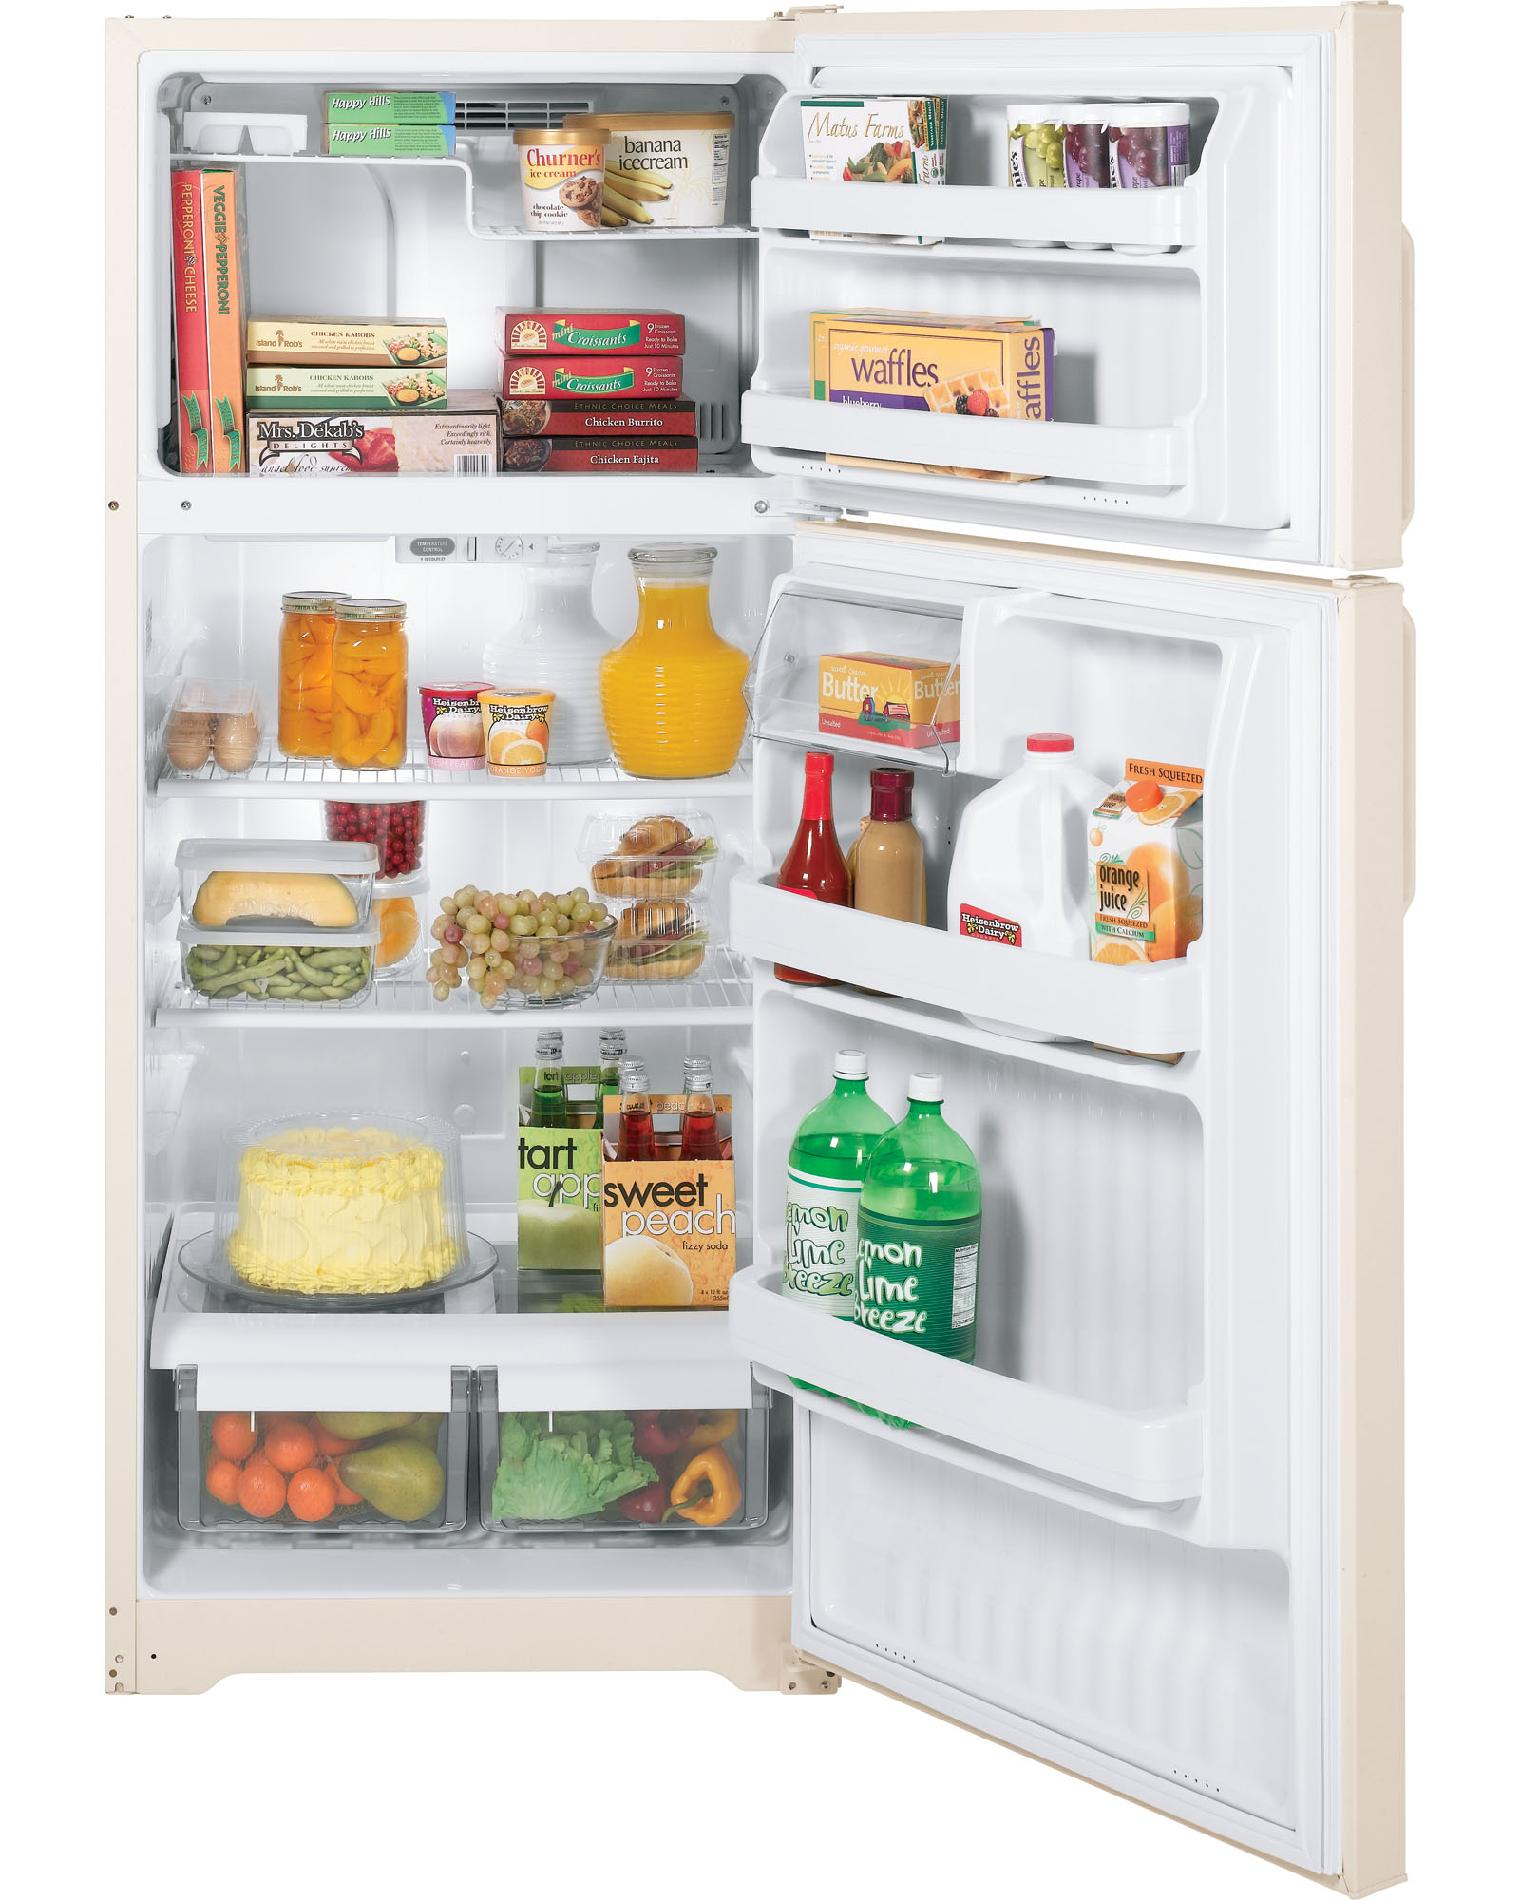 GE 16.5 cu. ft. Top-Freezer Refrigerator - Bisque